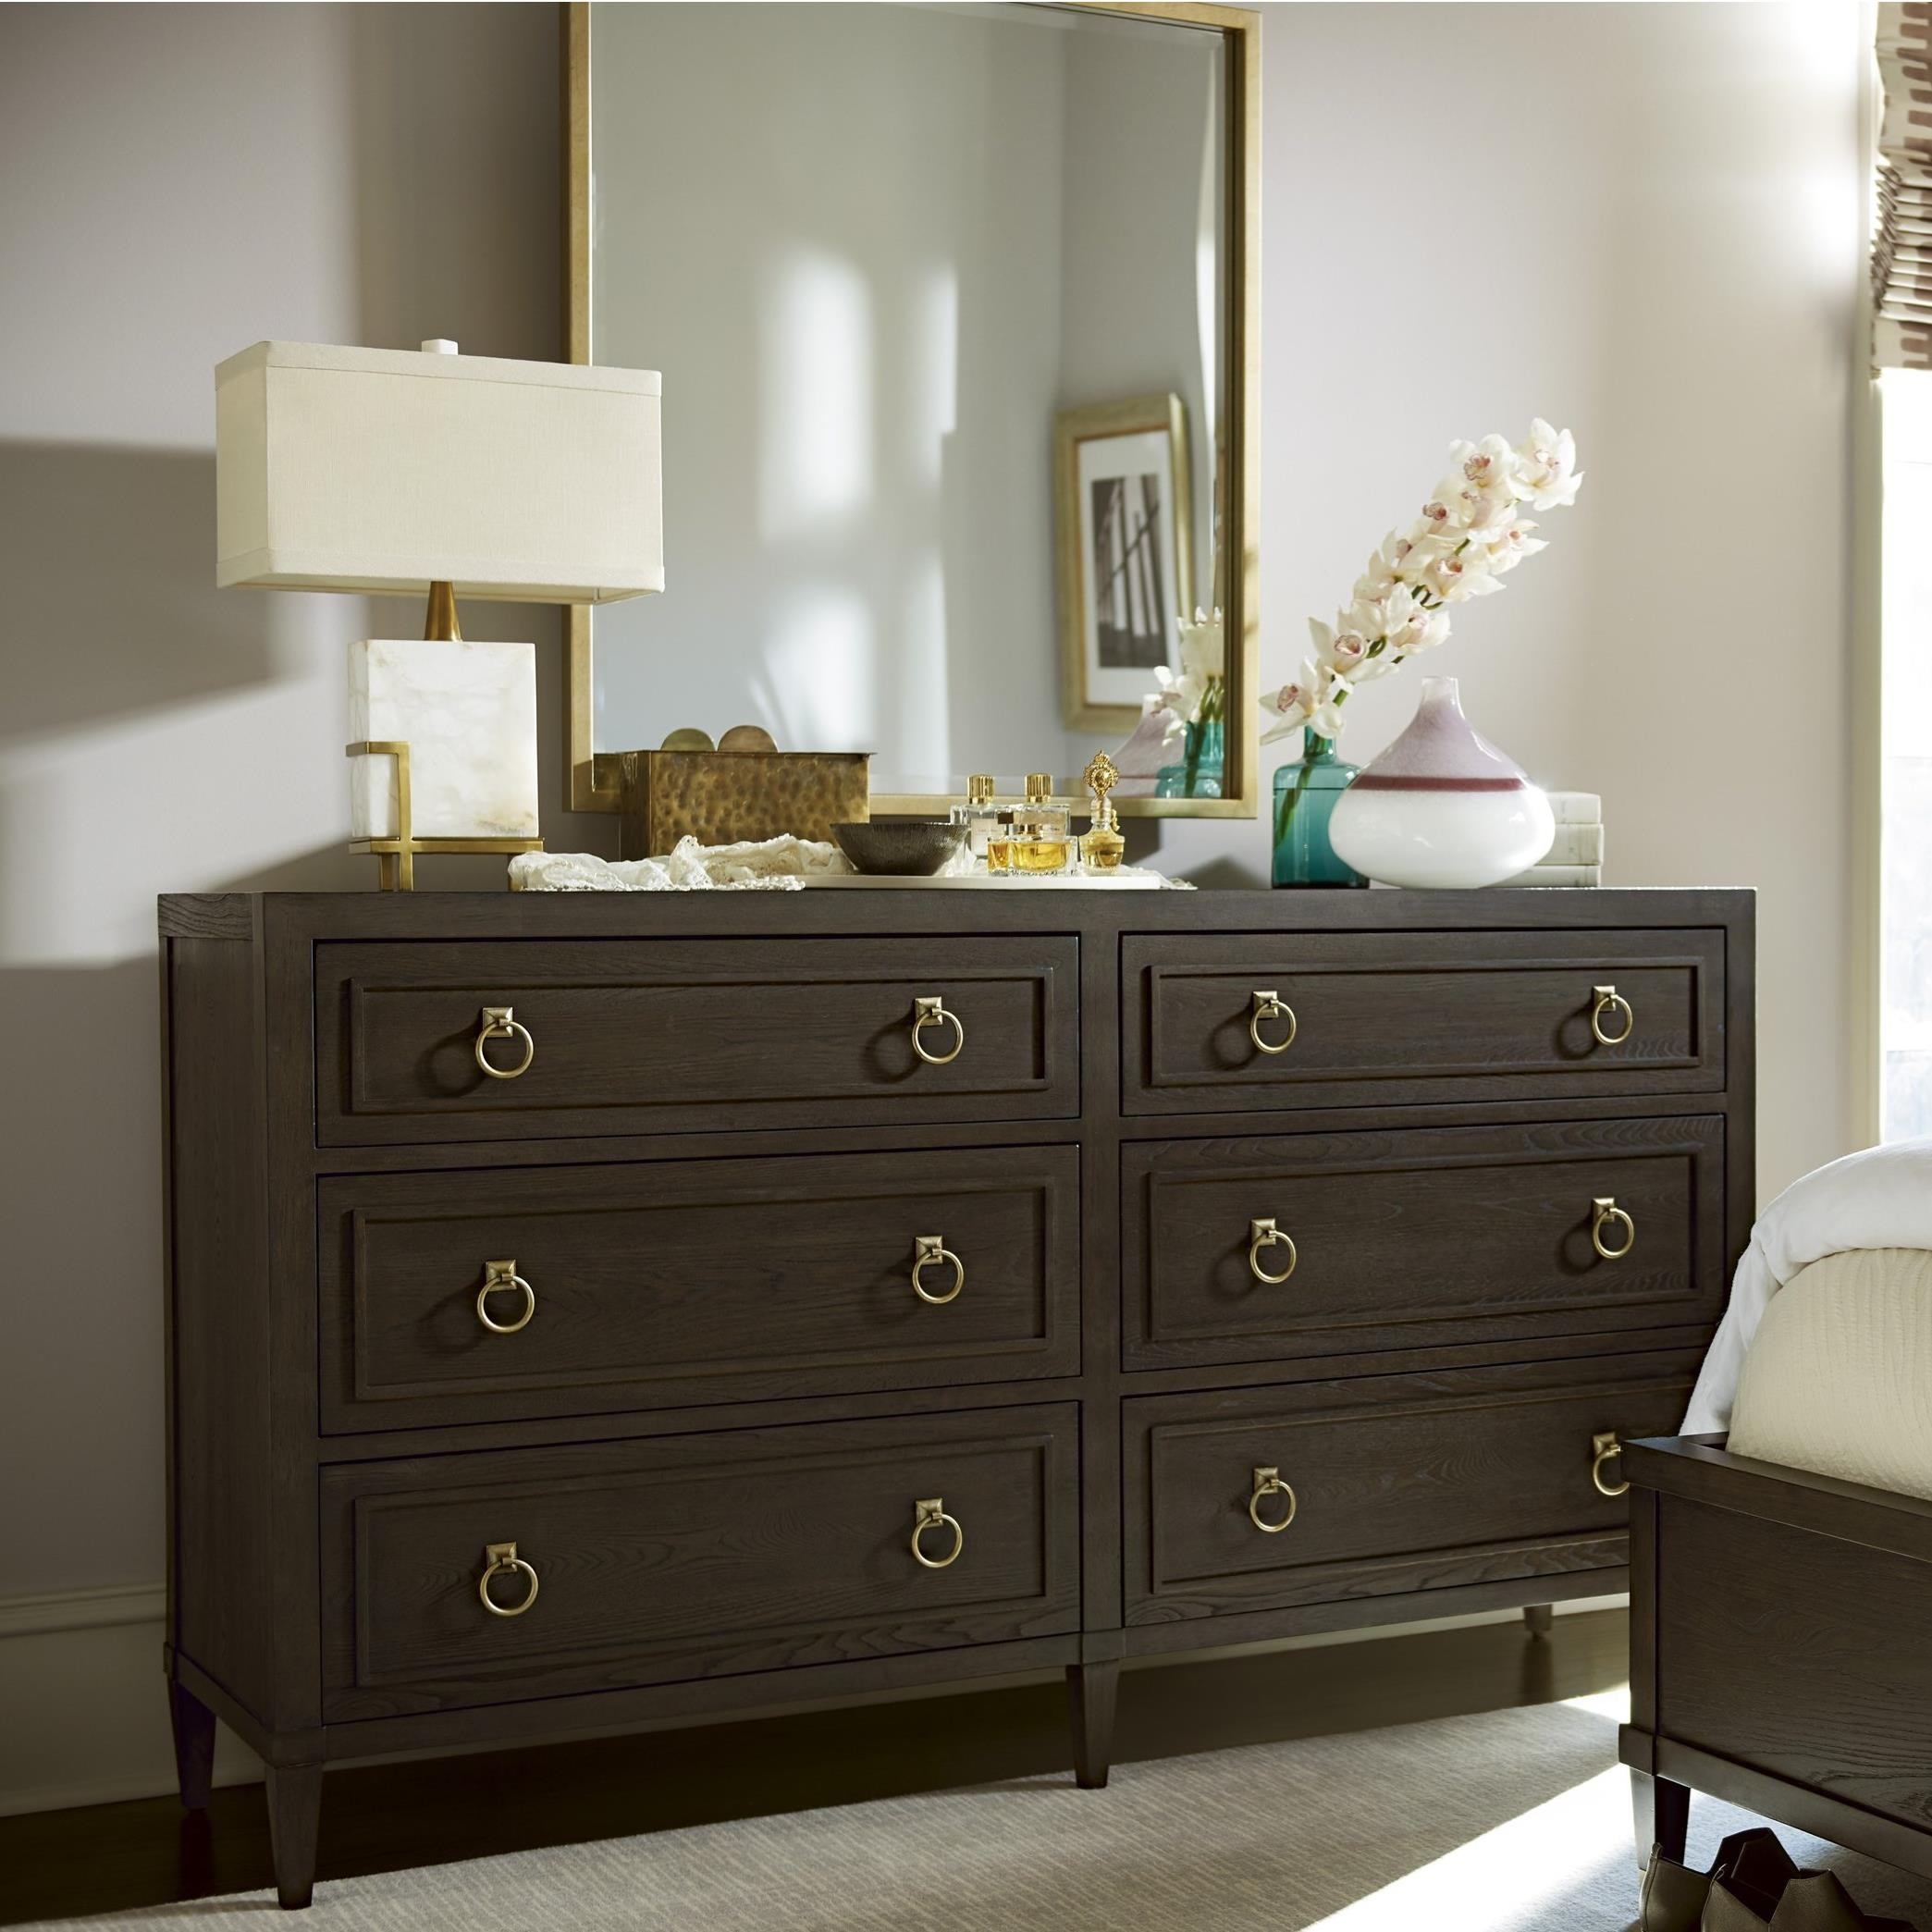 Soliloquy Dresser and Mirror Combo by Universal at Baer's Furniture